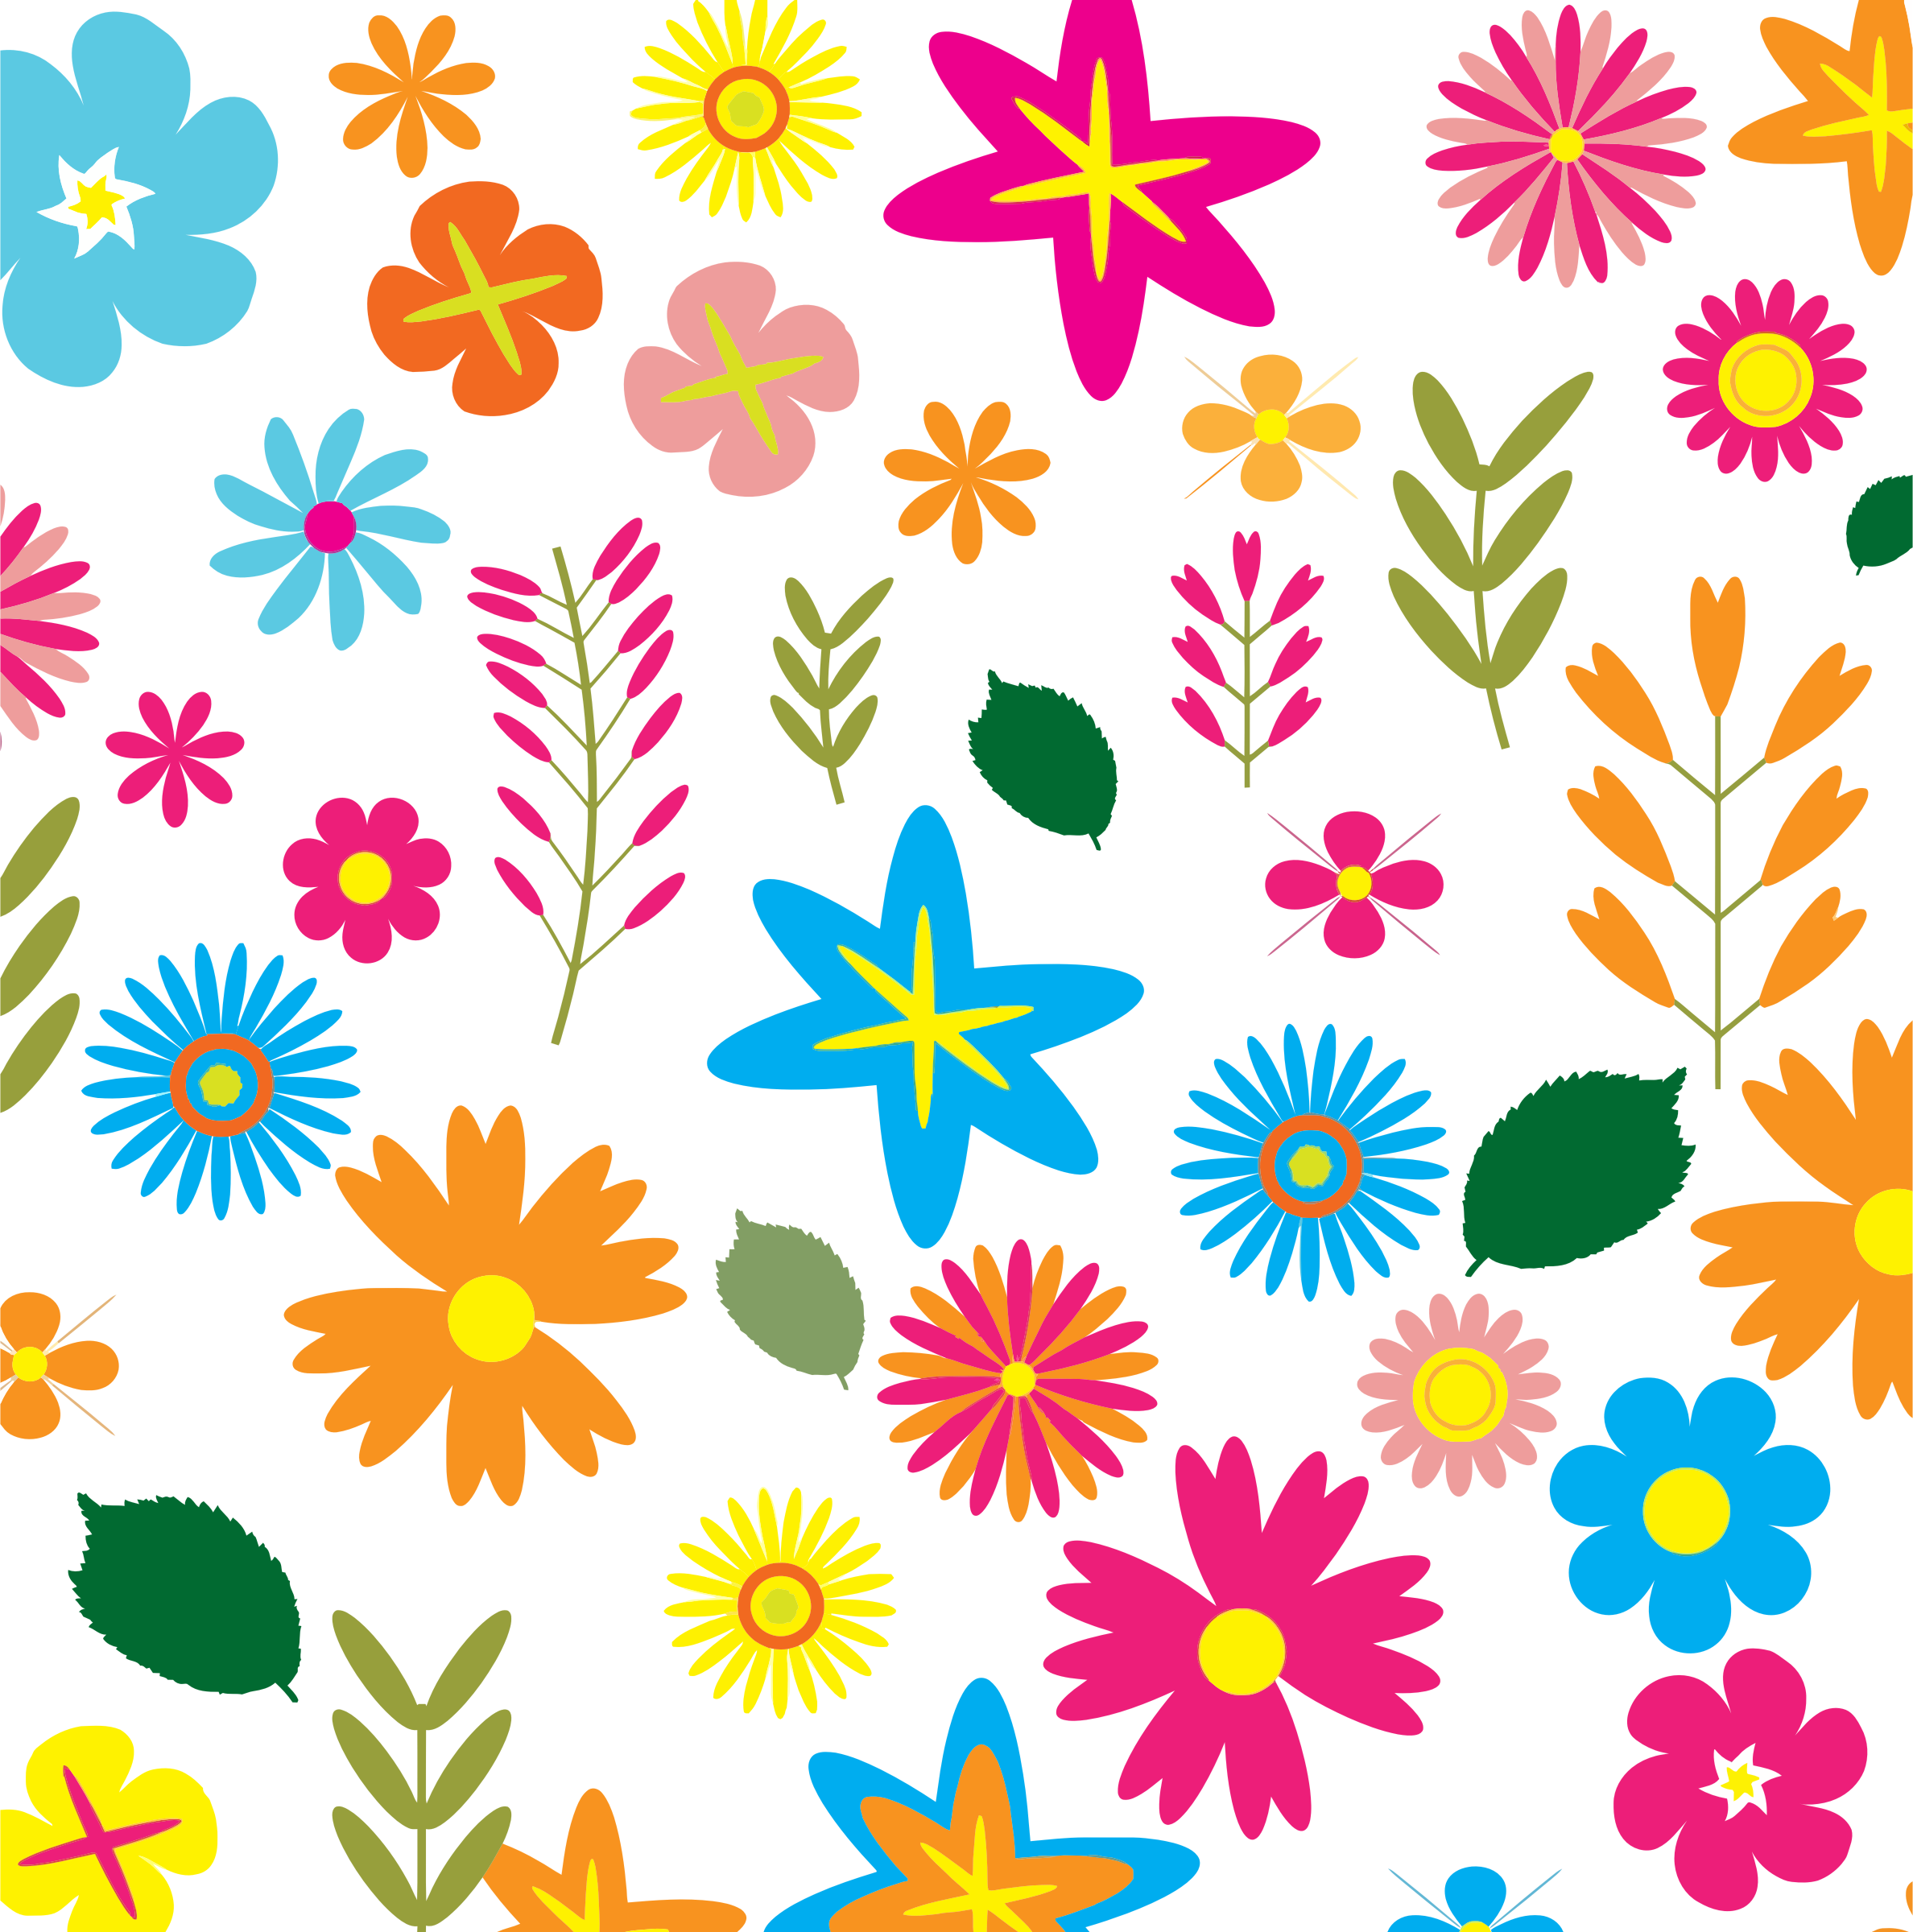 Flower clipart backgrounds graphic transparent stock Clipart - Colorful Floral Pattern Background 3 graphic transparent stock